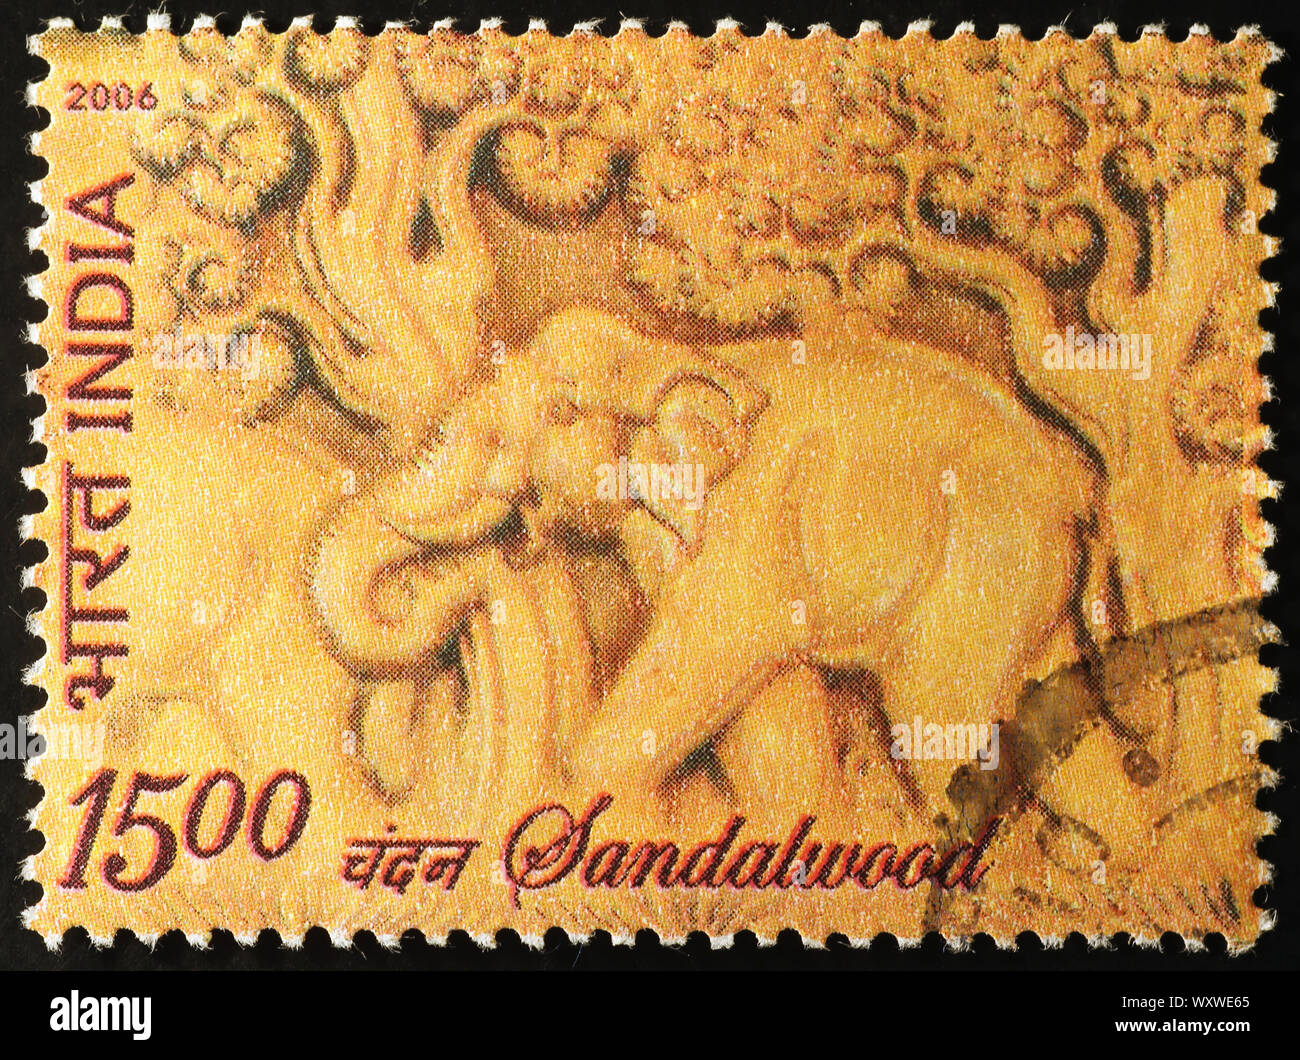 Sandalwood Art High Resolution Stock Photography And Images Alamy A wide variety of carved sandalwood elephants options are available to you, such as use, material, and theme. https www alamy com elephant carved on sandalwood in indian postage stamp image274696525 html